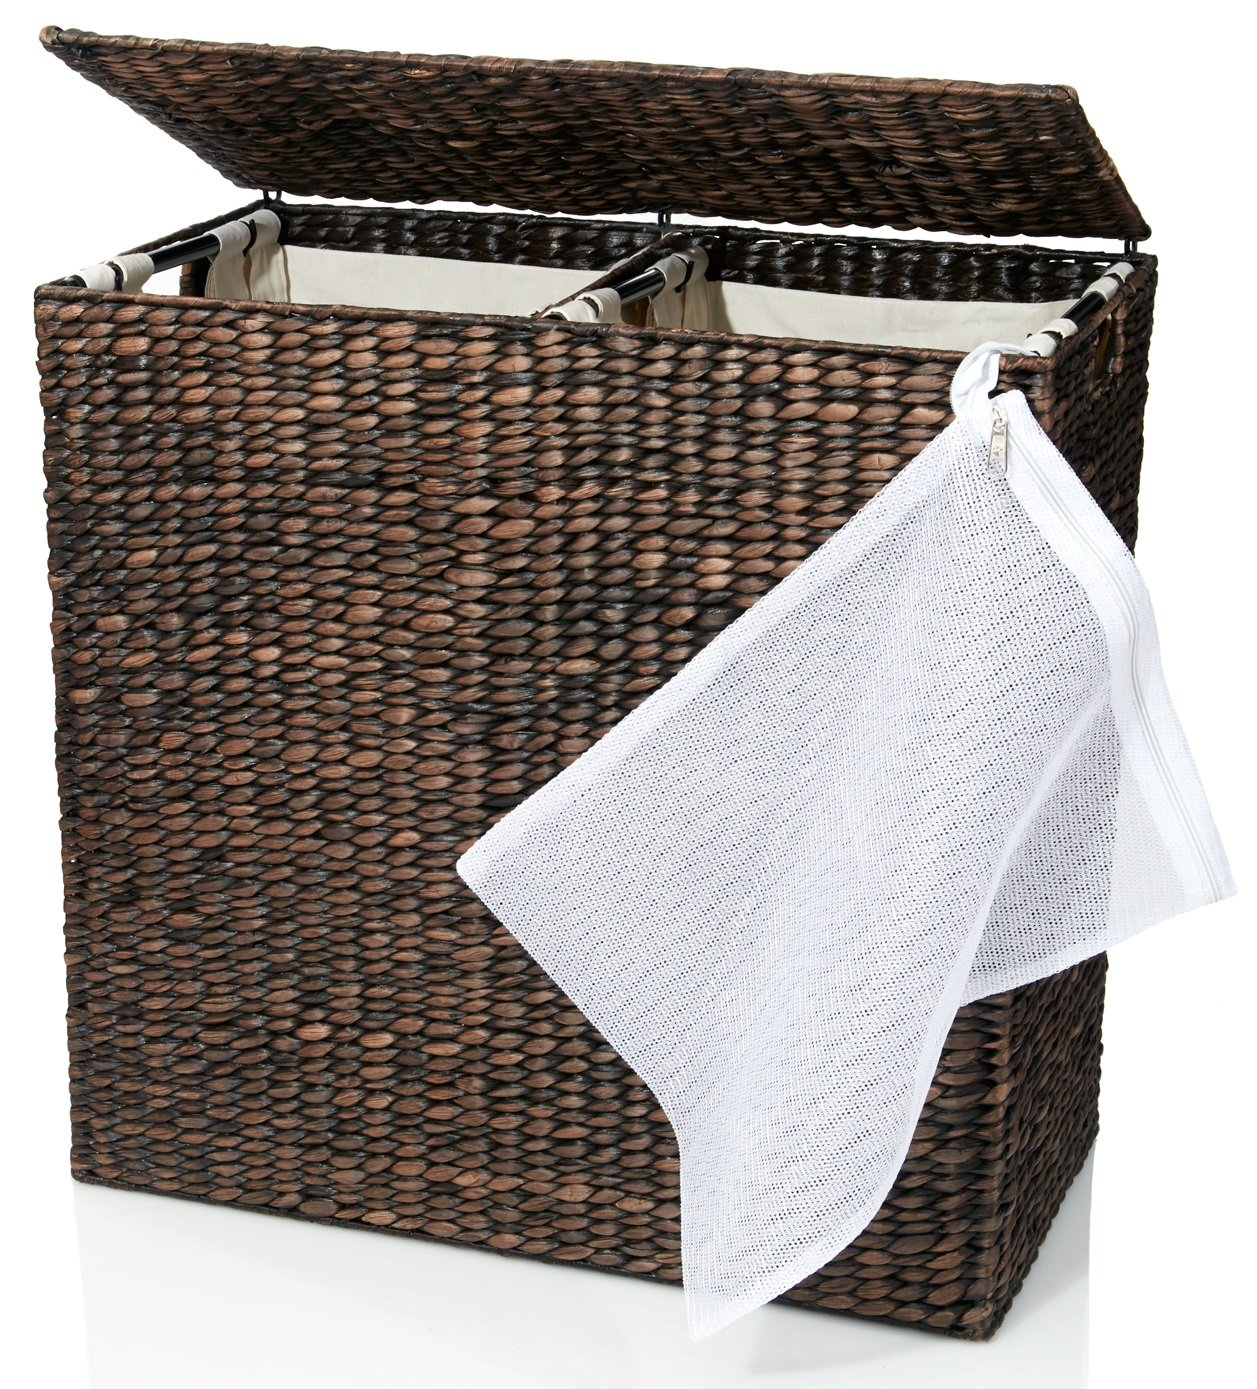 Designer Wicker Laundry Hamper with Divided Interior and Laundry Basket Bags - Espresso Water Hyacinth Hamper with Lid, Includes Two Removable Laundry Liners and Delicates Mesh Laundry Bag - NO MORE UGLY PLASTIC HAMPERS: Woven carefully by hand, this water hyacinth laundry hamper is a perfect stylish and eco-friendly addition to any home. It's beautiful espresso finish and delicate weaving make it a decorative as well as functional item. Each laundry basket features a flip open lid and wide carrying handle on the side. Dimensions: 24-Inch wide x 13-Inch deep x 24-Inch high. Weight: 11.5 pounds DIVIDED INTERIOR SEPARATES LIGHTS AND DARKS: Do away with multiple laundry baskets with this dual interior water hyacinth laundry hamper. Open up the sturdy lid to find two separate hanging cotton bags that can hold lights and darks, his and hers, or any other combination you can think of! CARRYABLE COTTON BAGS MAKE LAUNDRY EASY: Now there's no need to lug a bulky laundry basket from the bedroom to the laundry room. Simply remove the two individual canvas liner bags (which are washable by the way) that hang from sturdy hooks inside the laundry hamper. The carrying poles make them easy to lift out of the basket and transport to the washing machine. - laundry-room, hampers-baskets, entryway-laundry-room - 81Jr0E12HAL -